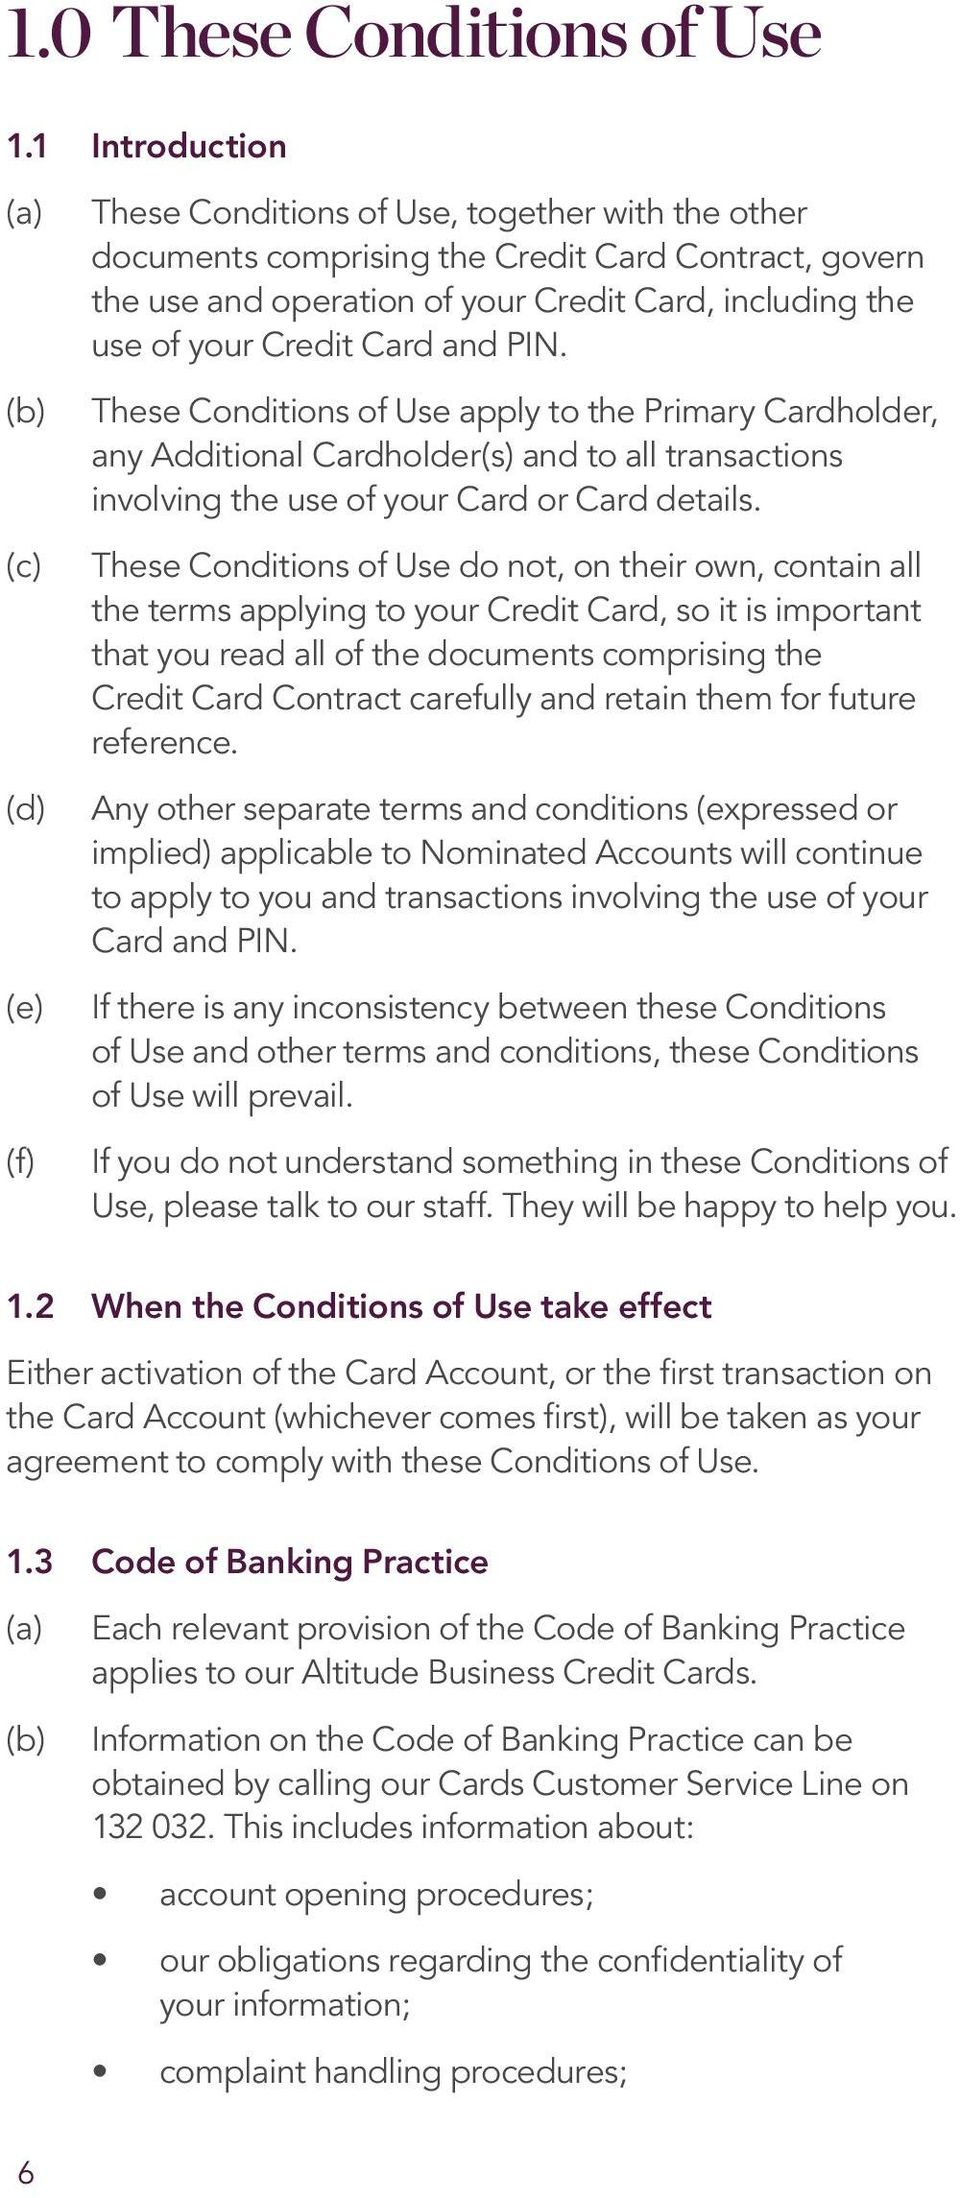 your Credit Card and PIN. These Conditions of Use apply to the Primary Cardholder, any Additional Cardholder(s) and to all transactions involving the use of your Card or Card details.